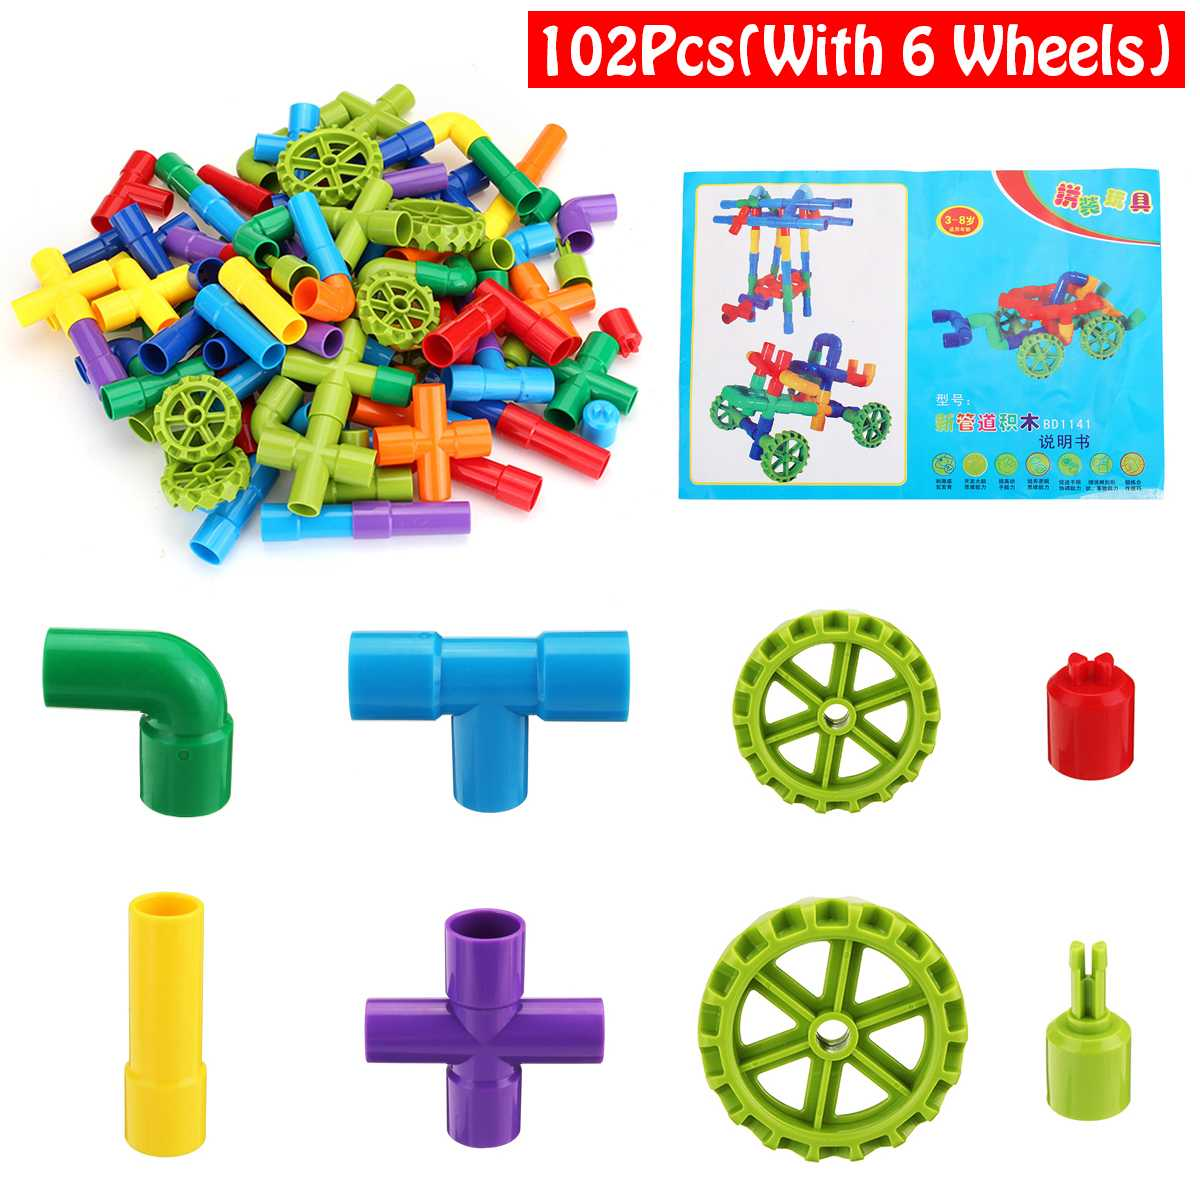 Building Blocks Toys for Children 72-102 PCS Educational DIY Water Pipe Gifts Assembling Pipeline Tunnel Model Kids Toys